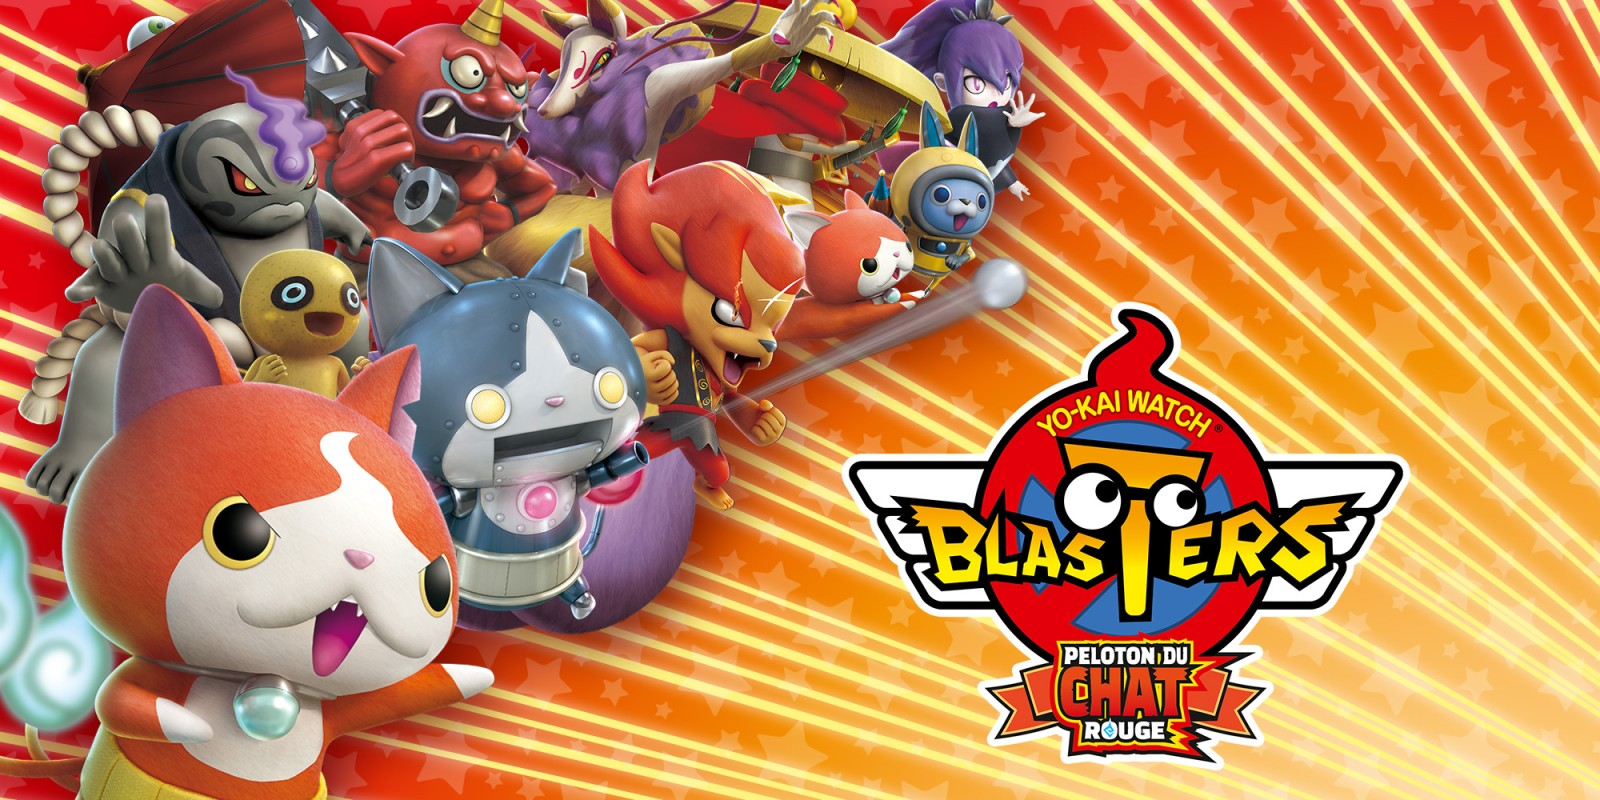 YO-KAI WATCH BLASTERS®: Peloton du Chat Rouge